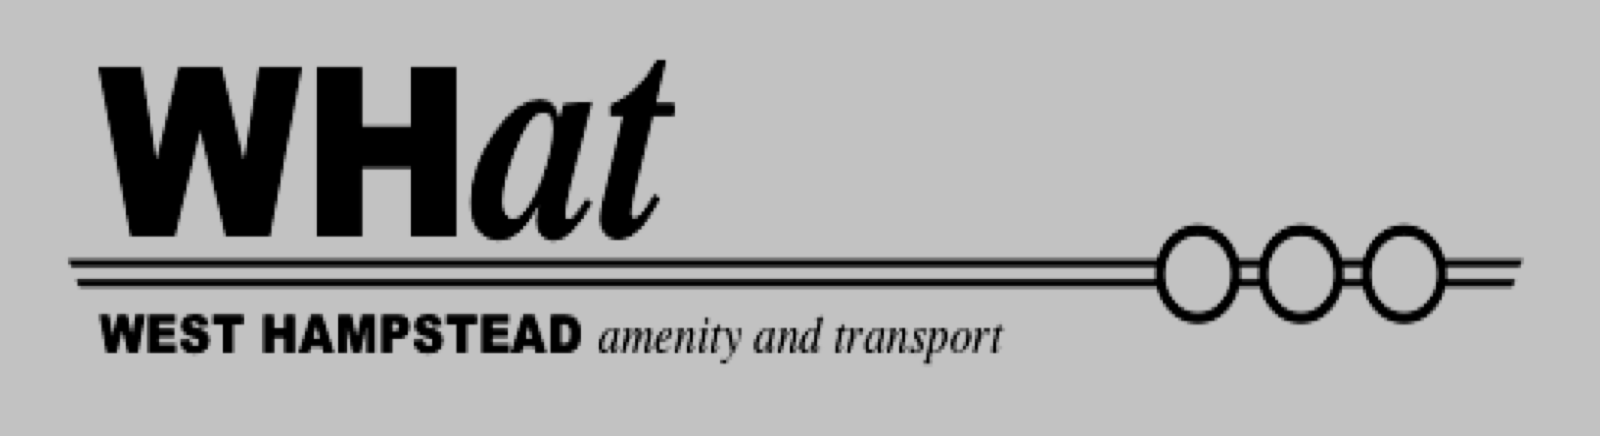 West Hampstead Amenity & Transport – WHAT